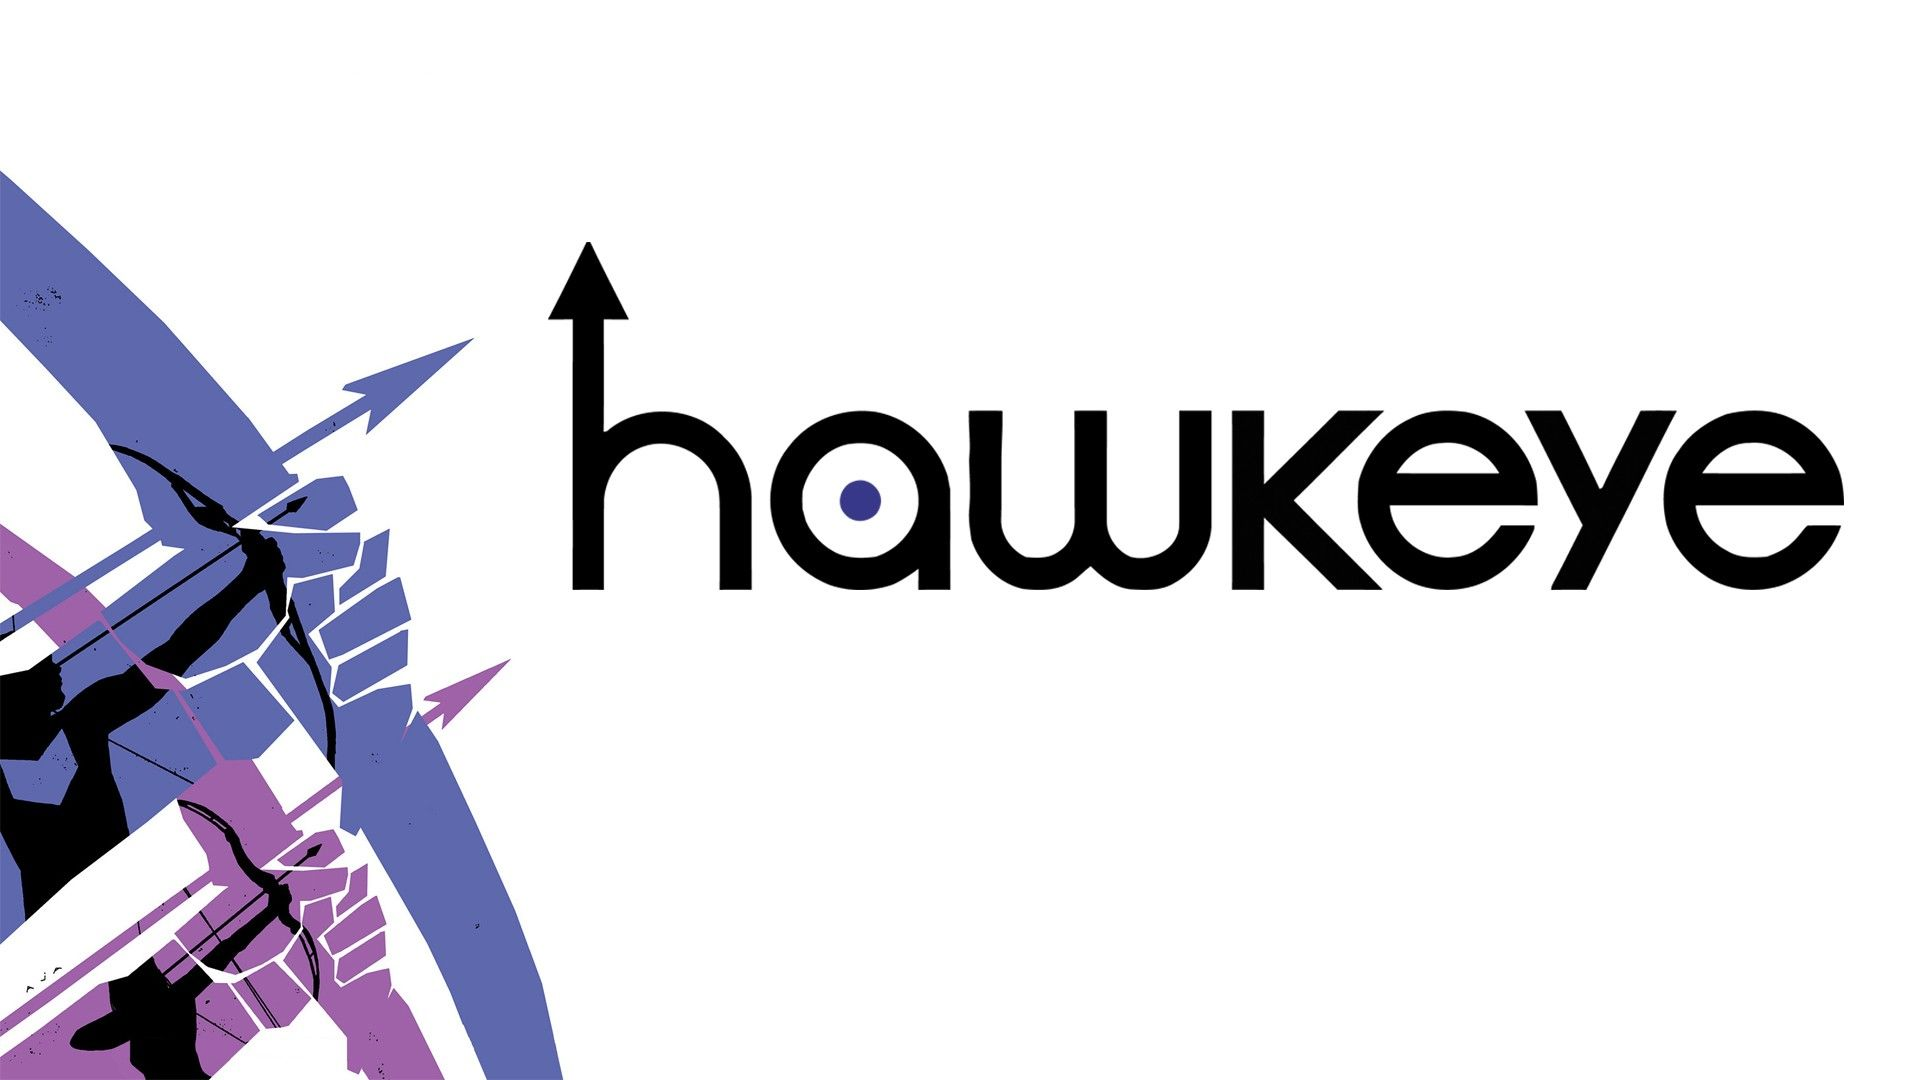 Hawkeye logo marvel clipart graphic black and white library Hawkeye logo marvel clipart - ClipartFest graphic black and white library